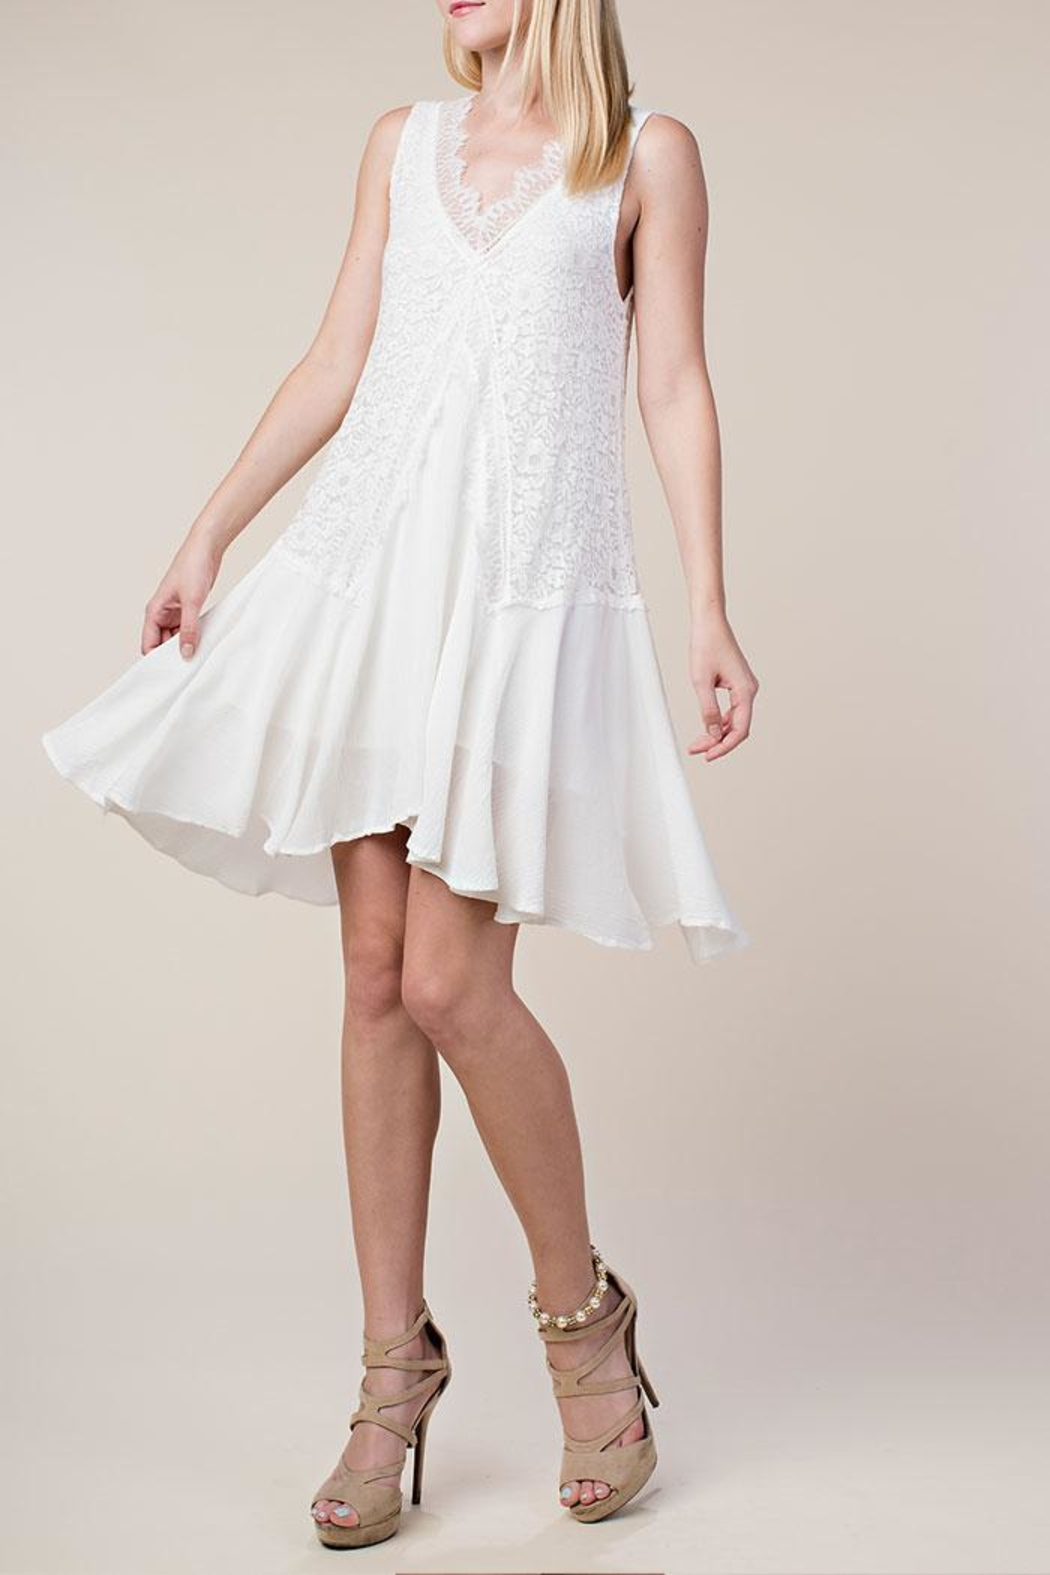 Vocal Apparel Lace Mix-Media Dress - Front Full Image